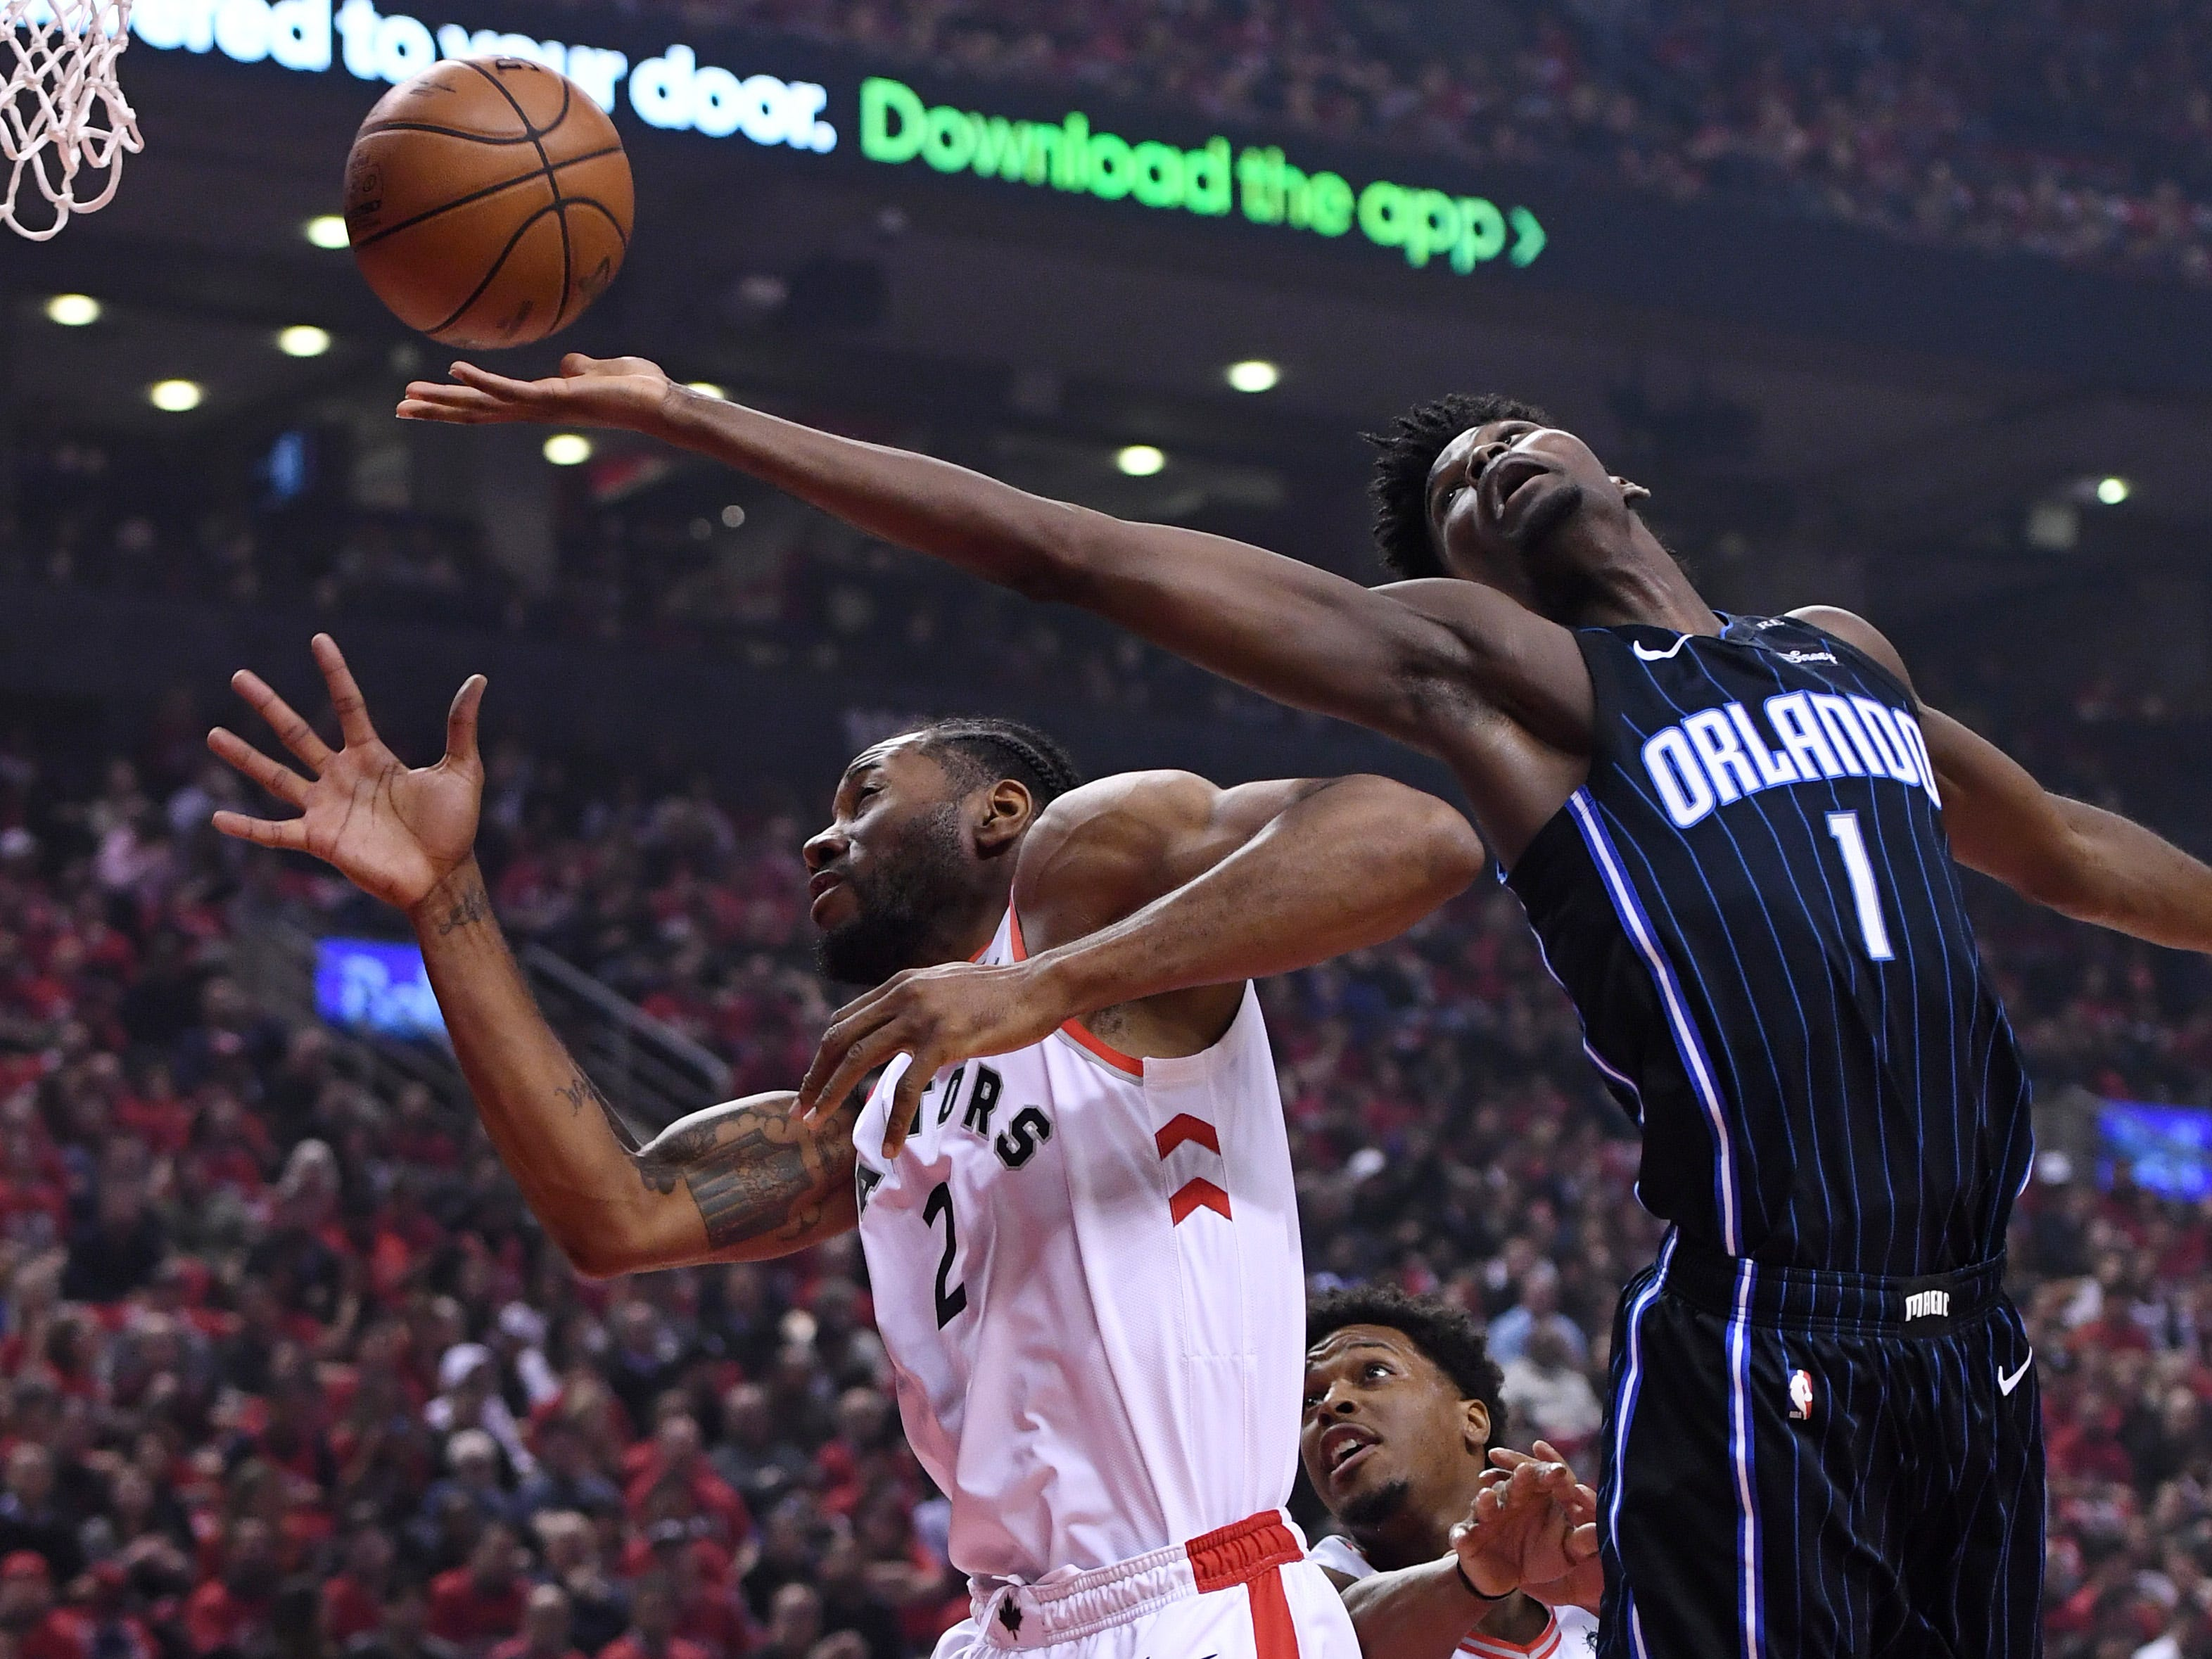 April 23: Orlando Magic forward Jonathan Isaac  (1) reaches for the ball over Toronto Raptors forward Kawhi Leonard (2) during Game 5 at Scotiabank Arena. The Raptors eliminated the Magic with a 115-96 win.